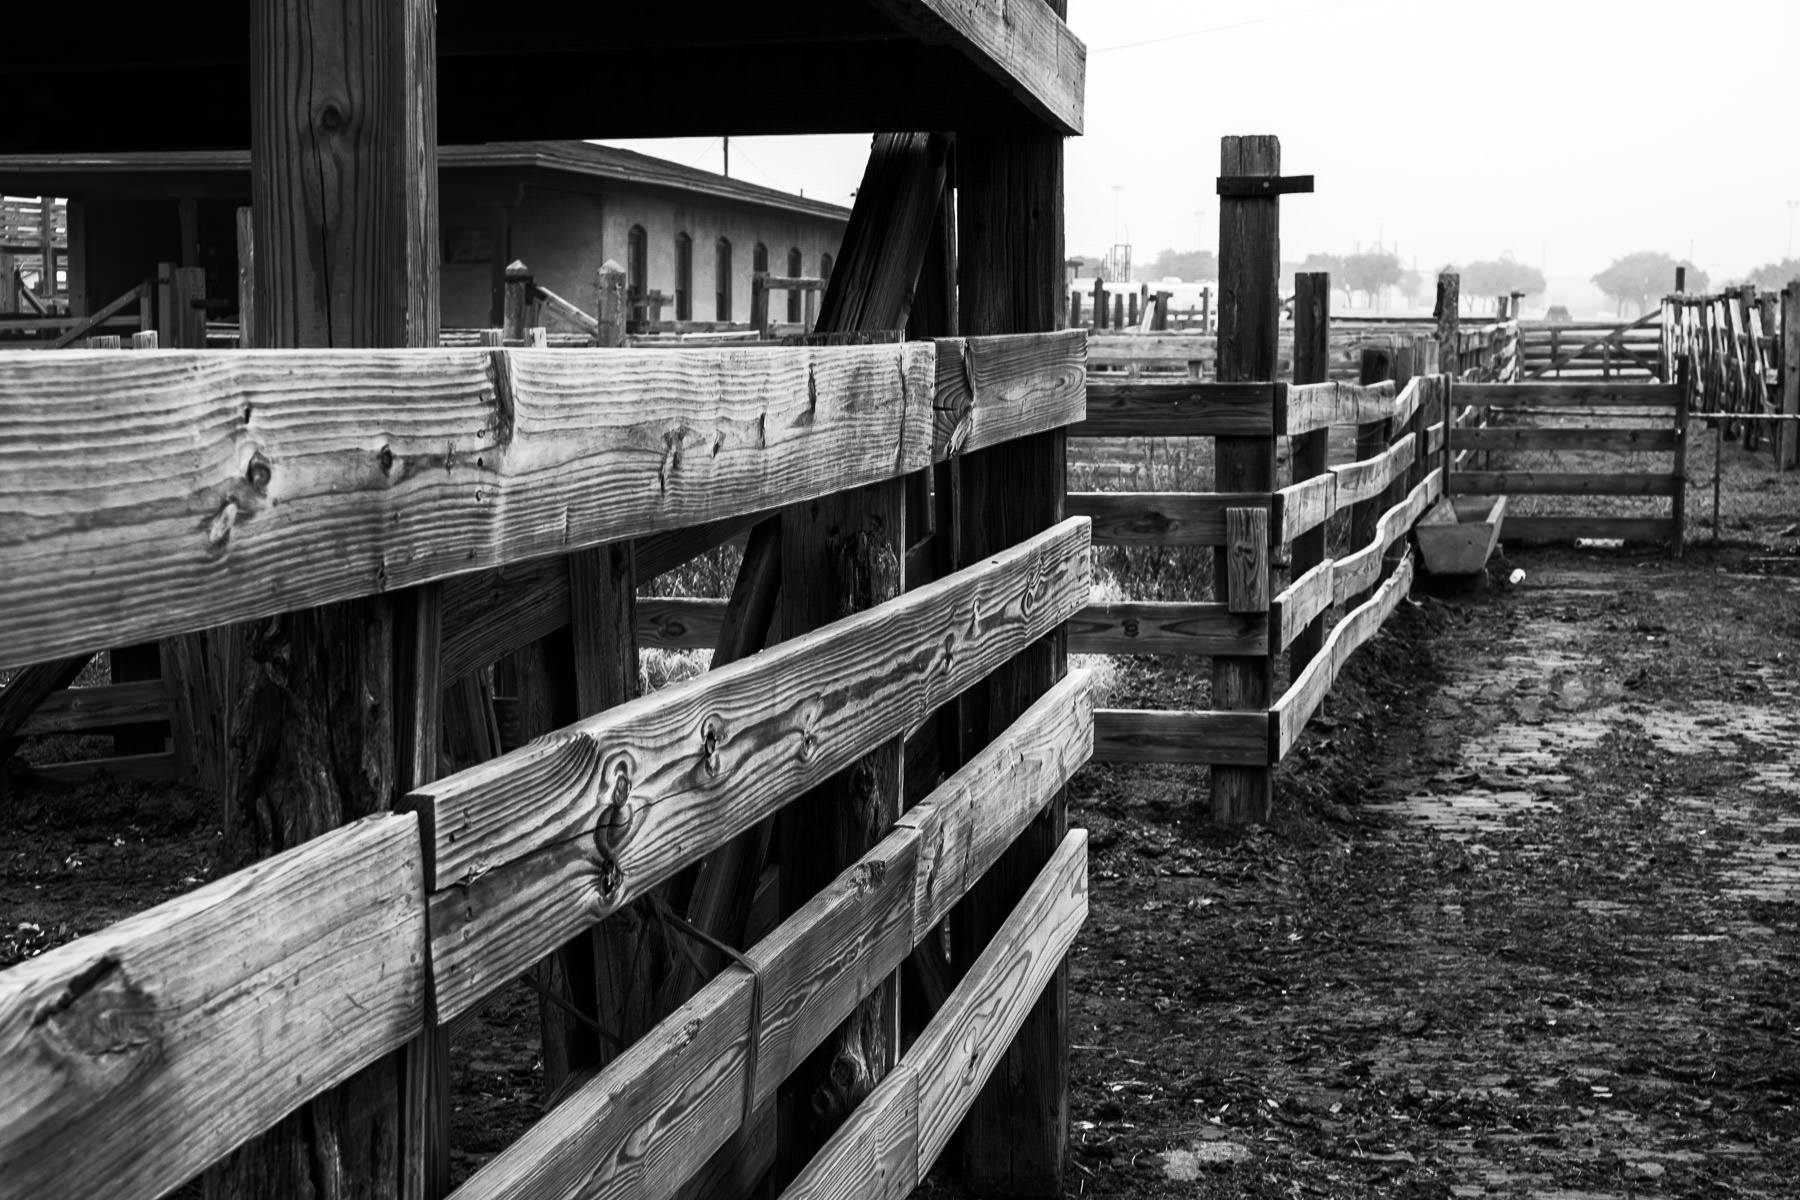 Wooden fences on old cattle pens at Fort Worth, Texas' historic Stockyards.